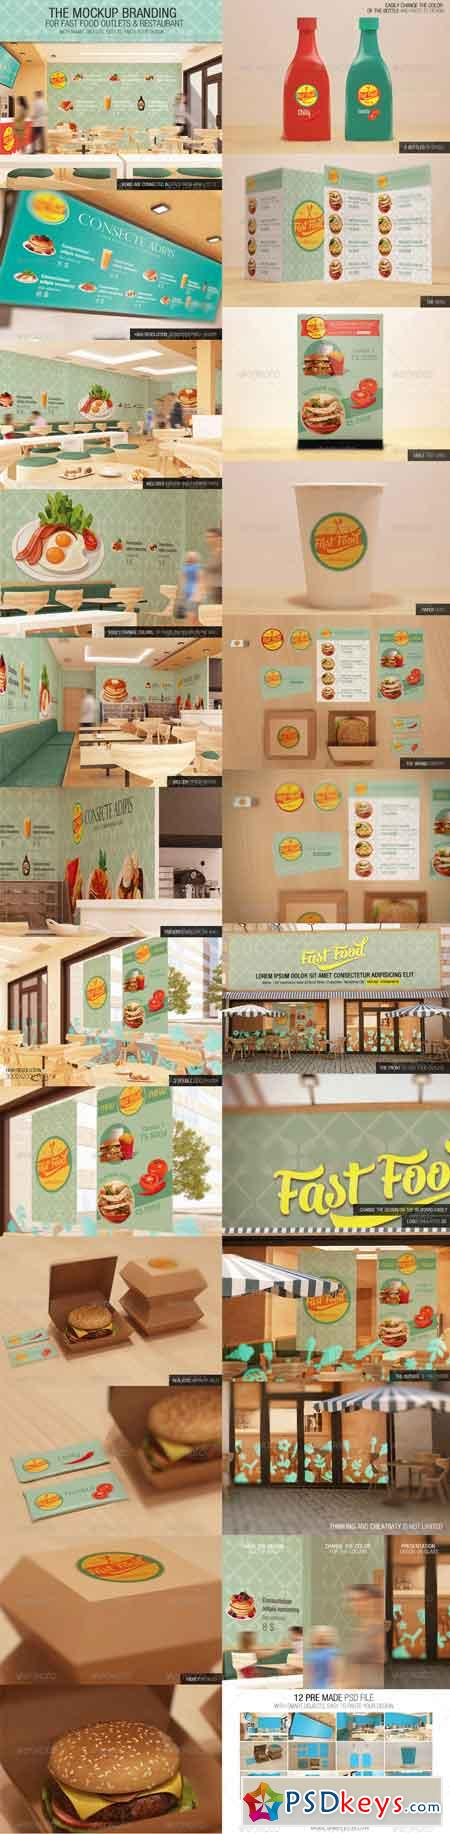 The Mockup Branding For Fast Food Outlets 7408488